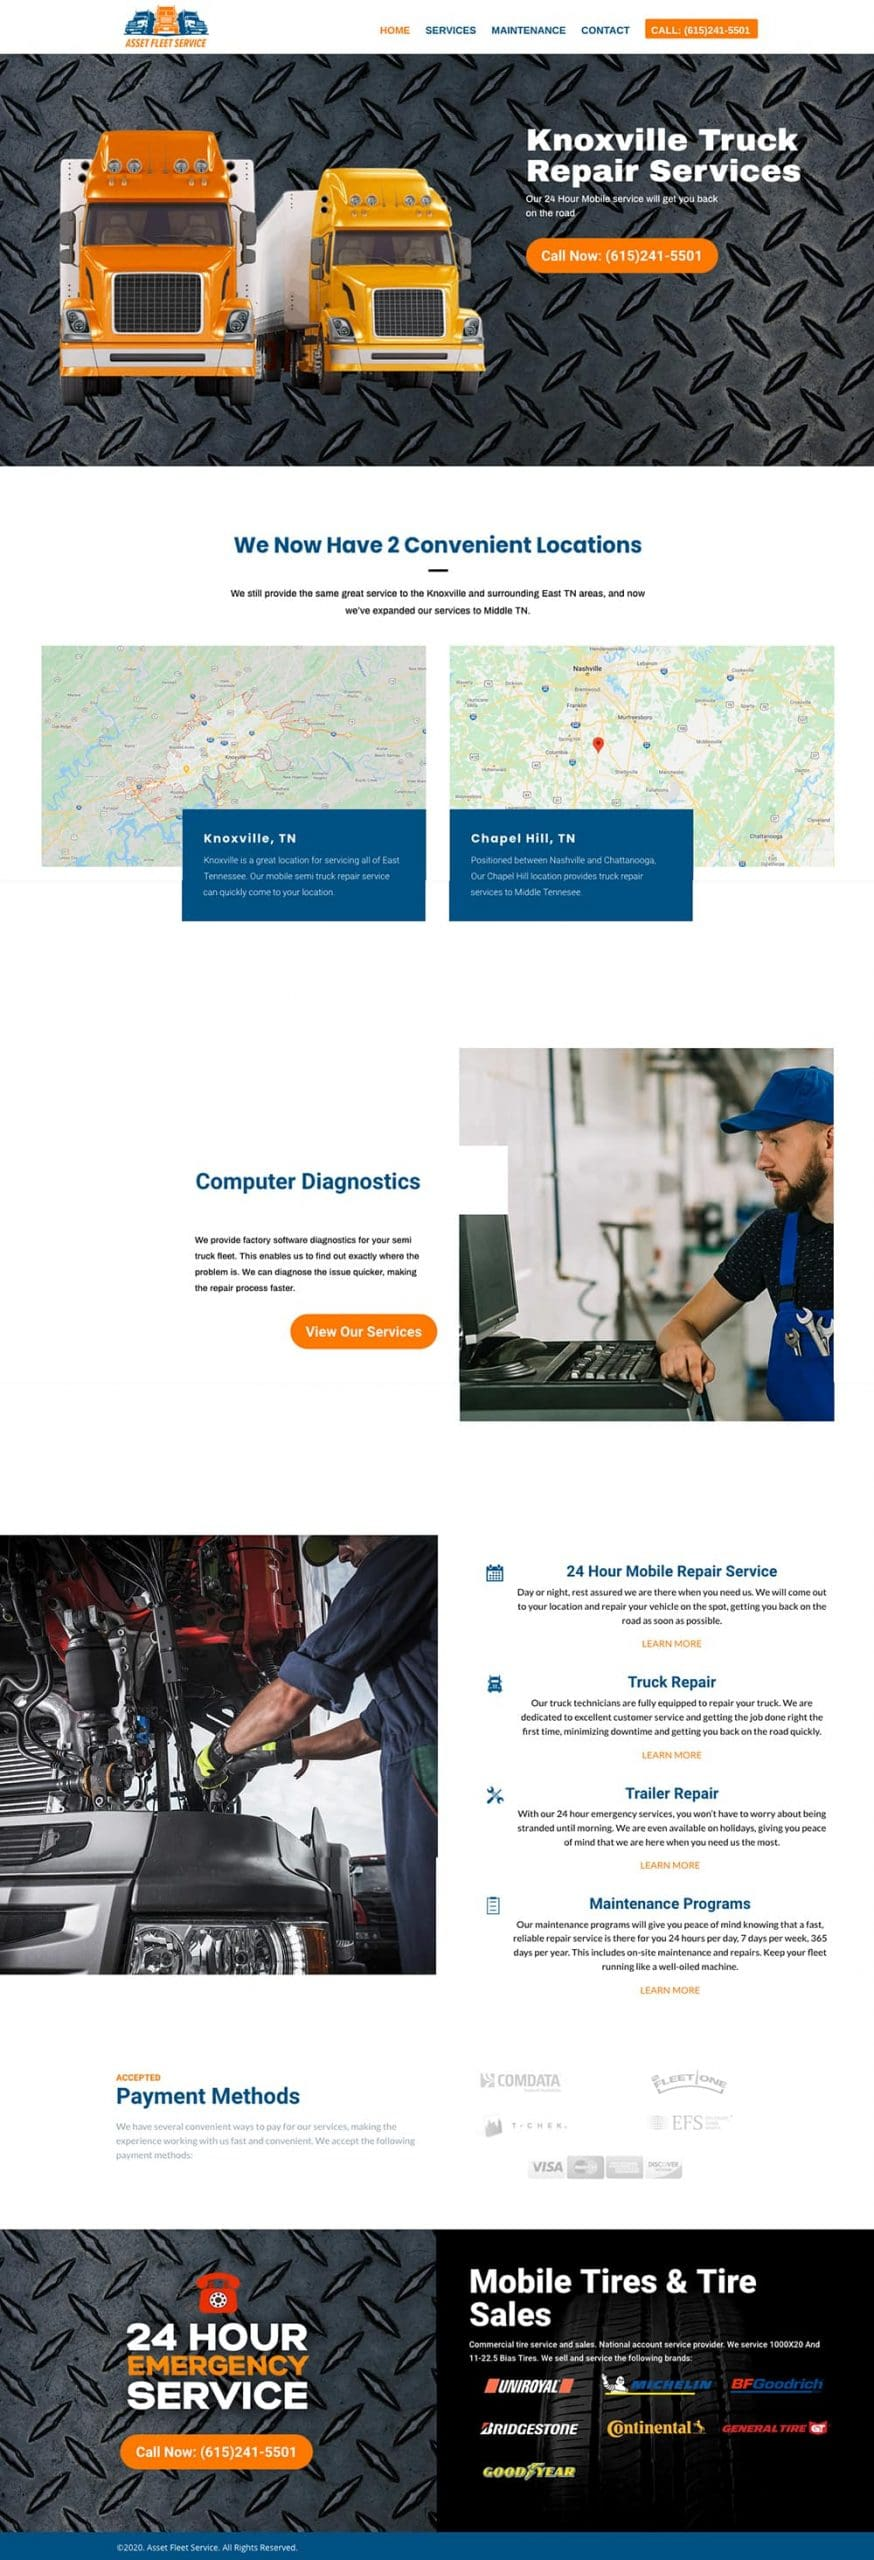 asset-fleetservice-homepage-scaled